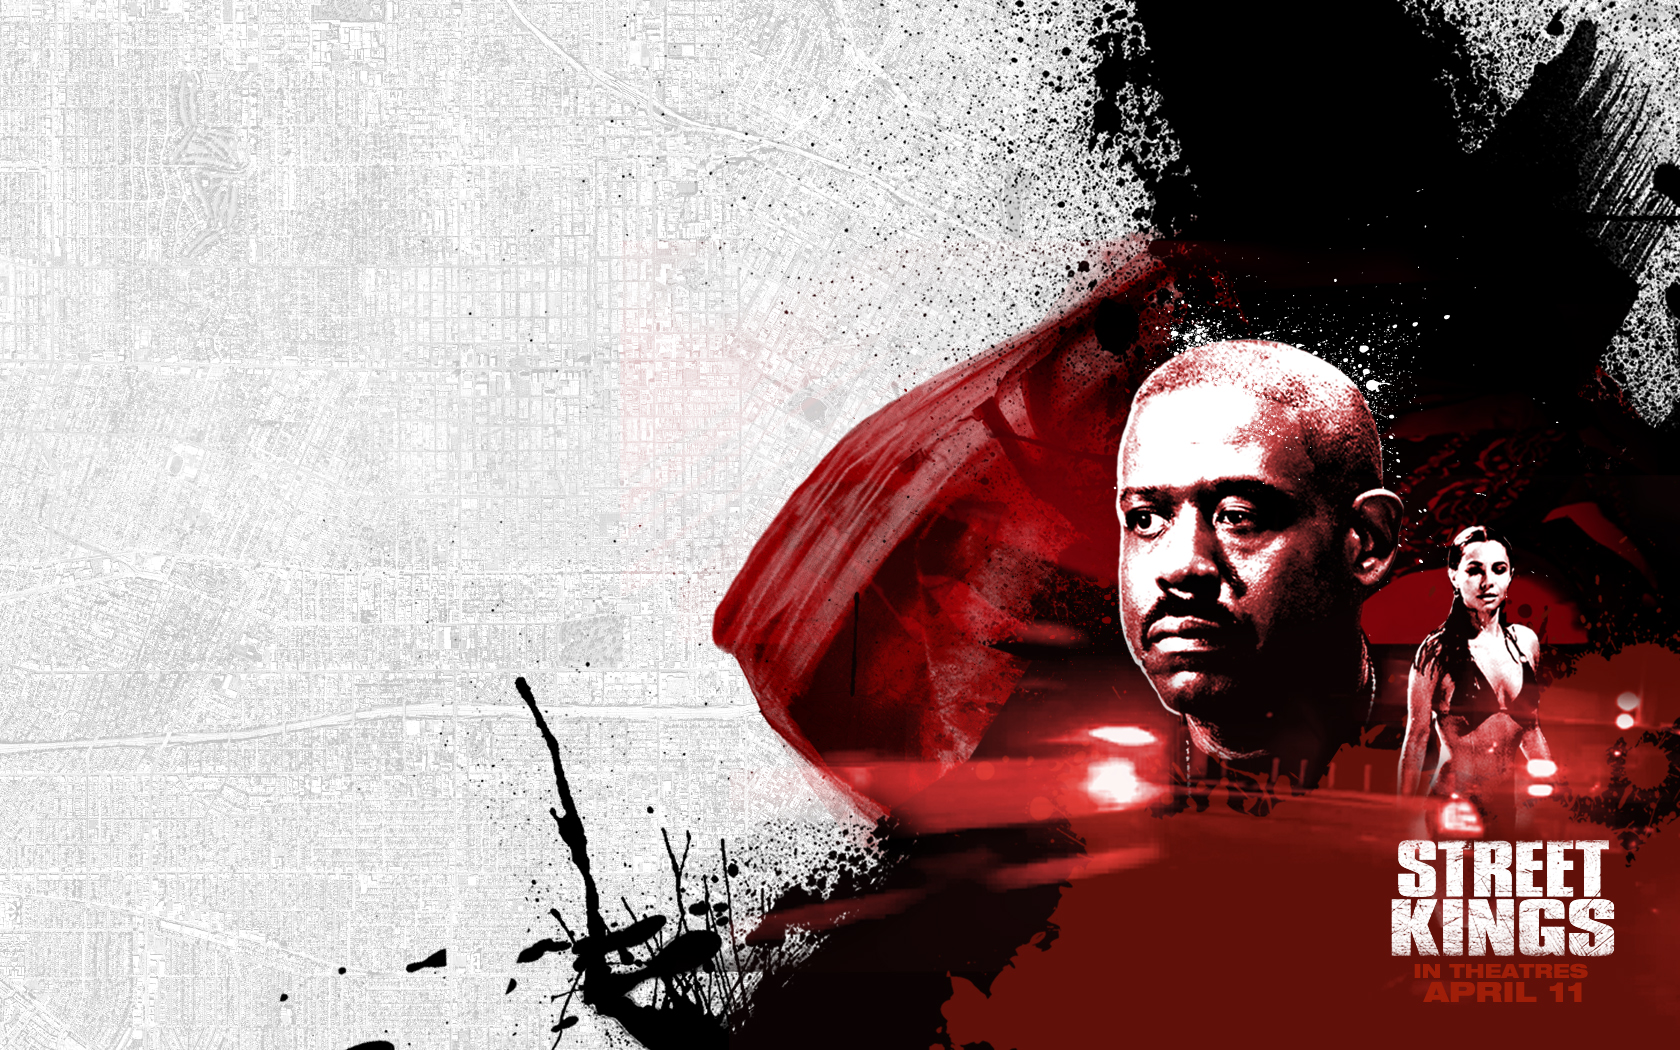 Forest Whitaker - Forest Whitaker in Street Kings Wallpaper 4 800x600